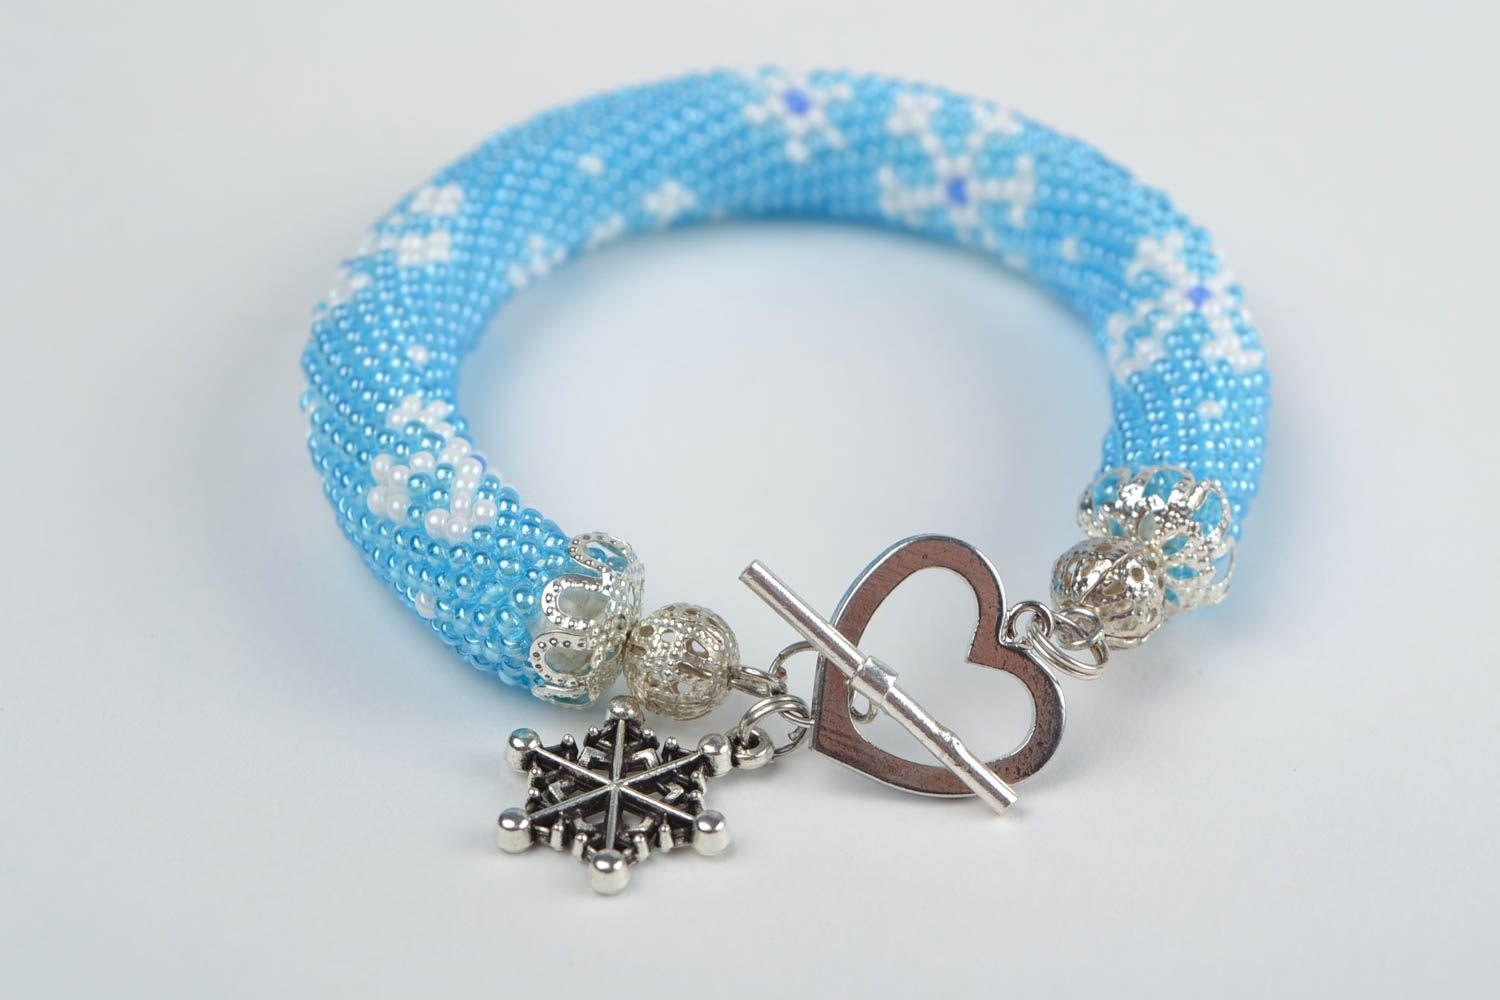 Beautiful handmade woven beaded cord bracelet of blue color with charm Snowflake photo 5